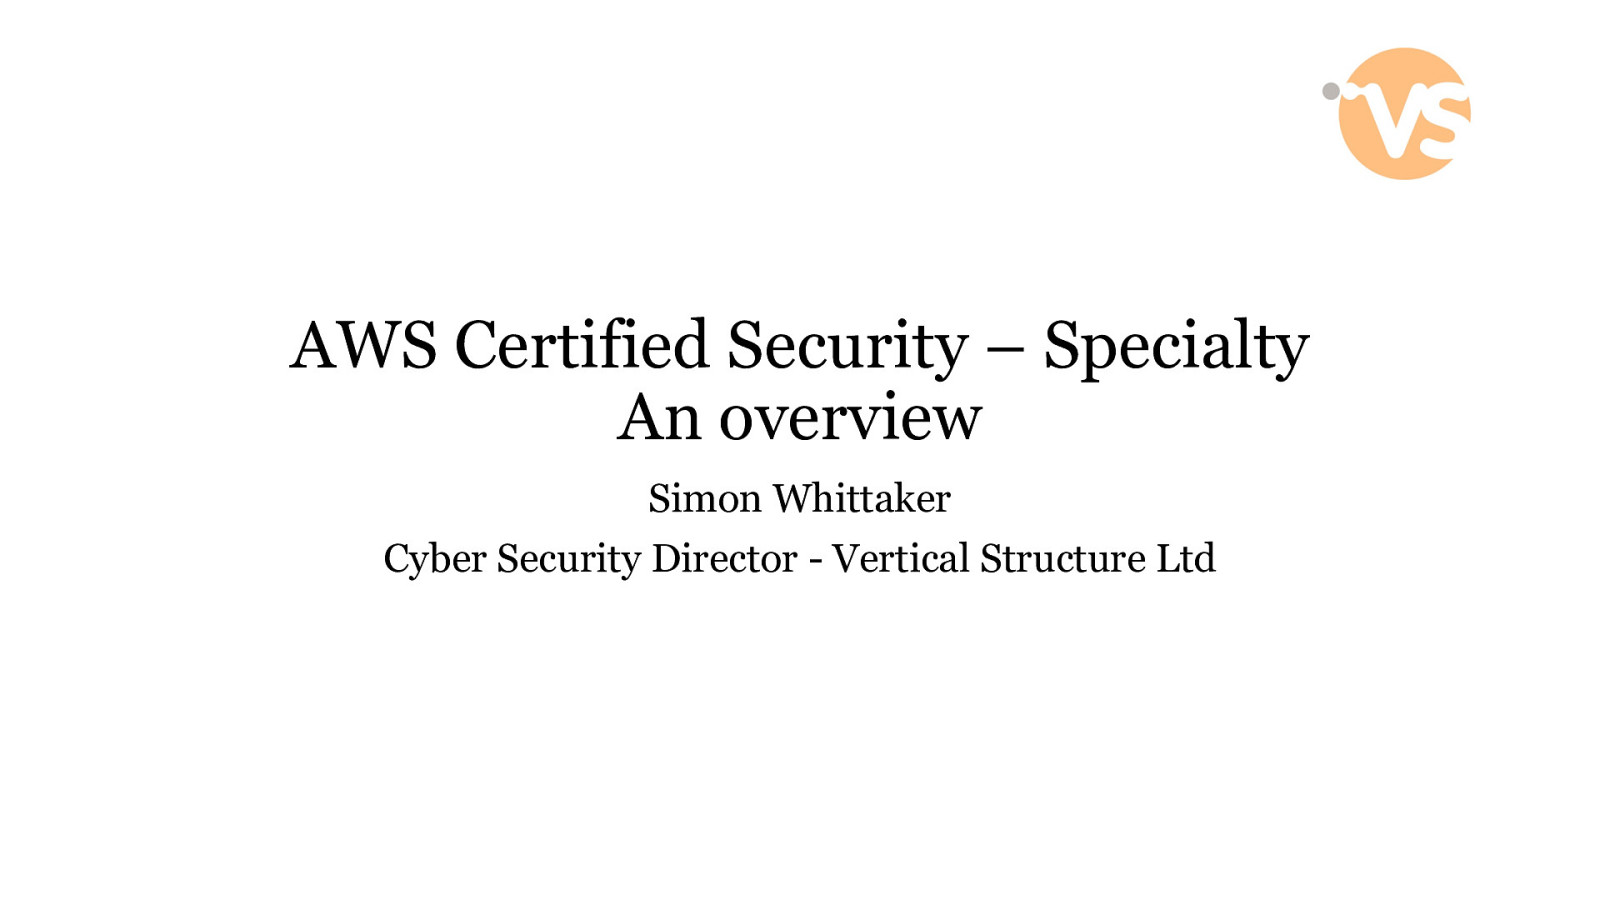 DevOps Belfast: 'AWS Certified Security - Specialty' - A general overview